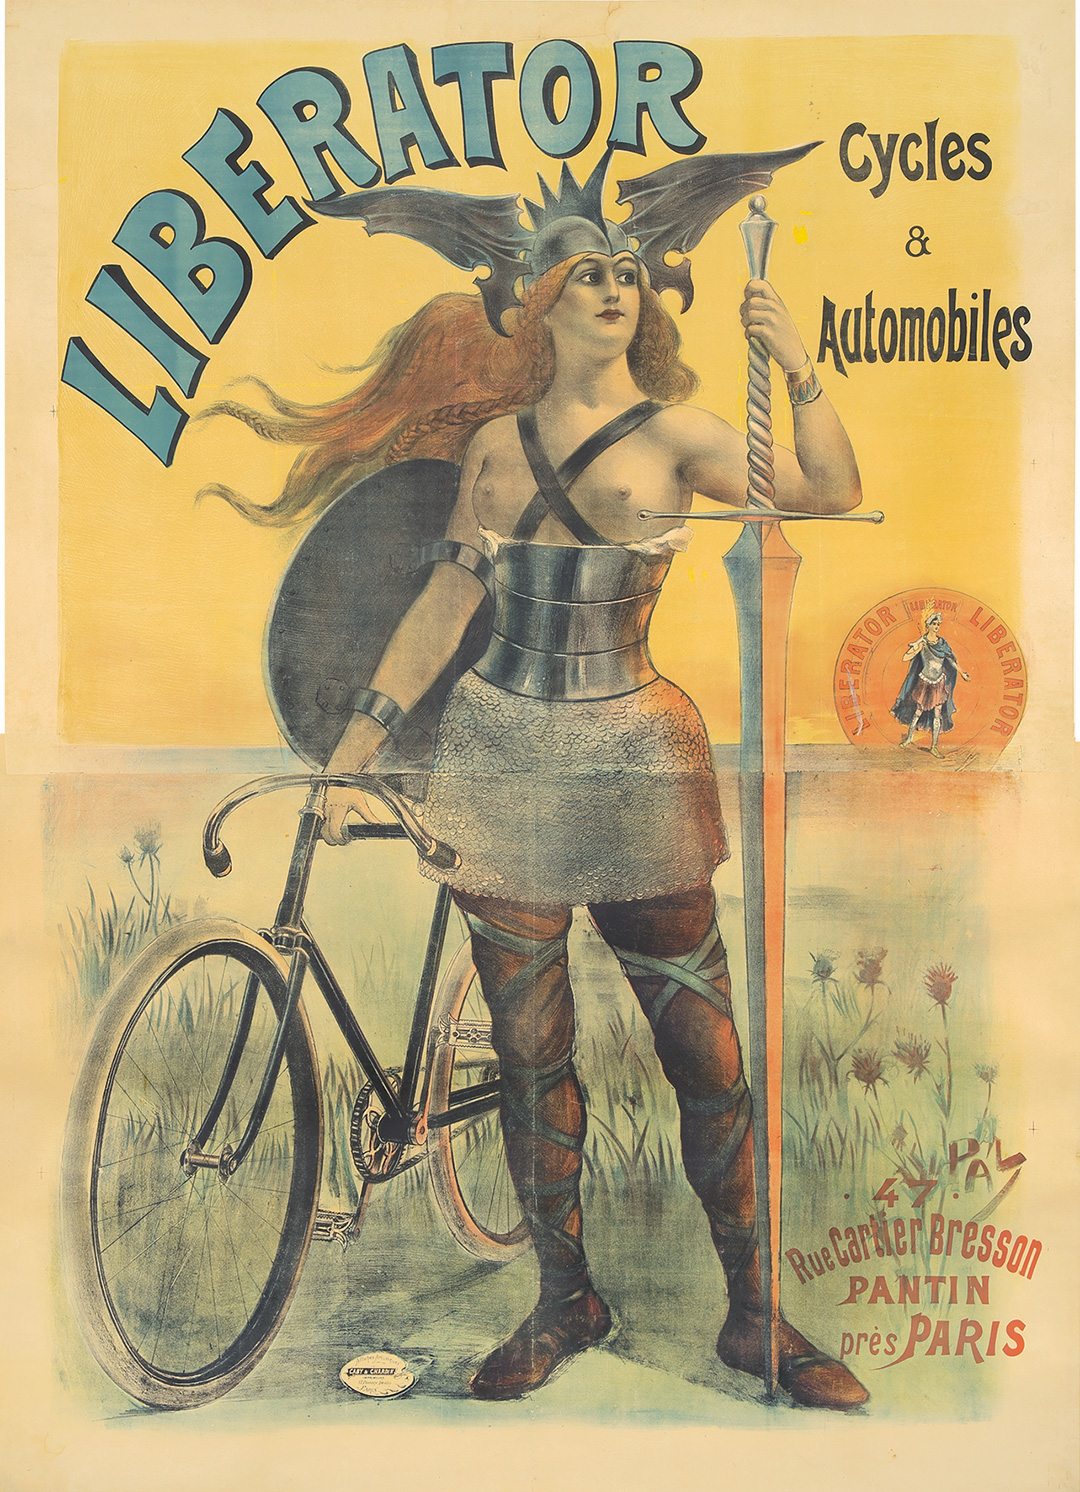 50. Liberator Cycles & Automobiles. 1899.